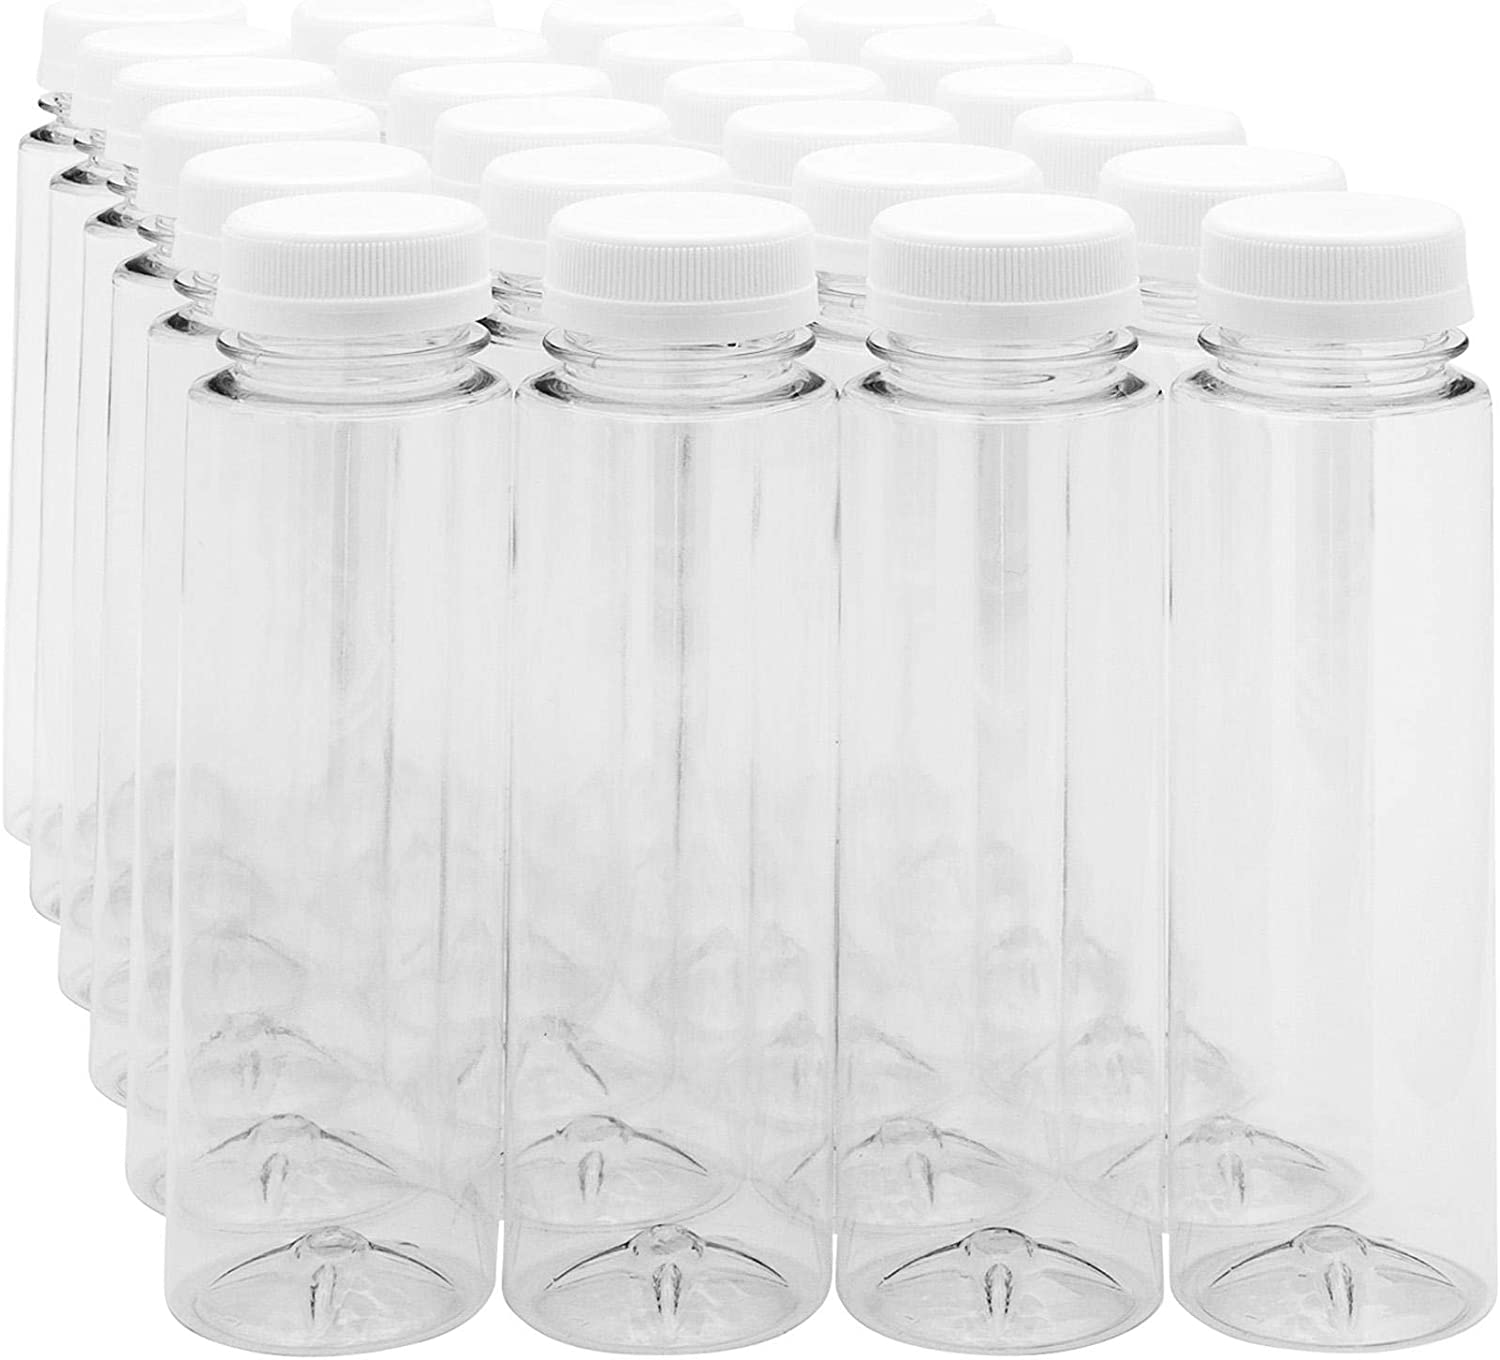 8-OZ Cylindrical Plastic Juice Bottles - Clear Cold Food Pressed San Ranking TOP9 Jose Mall